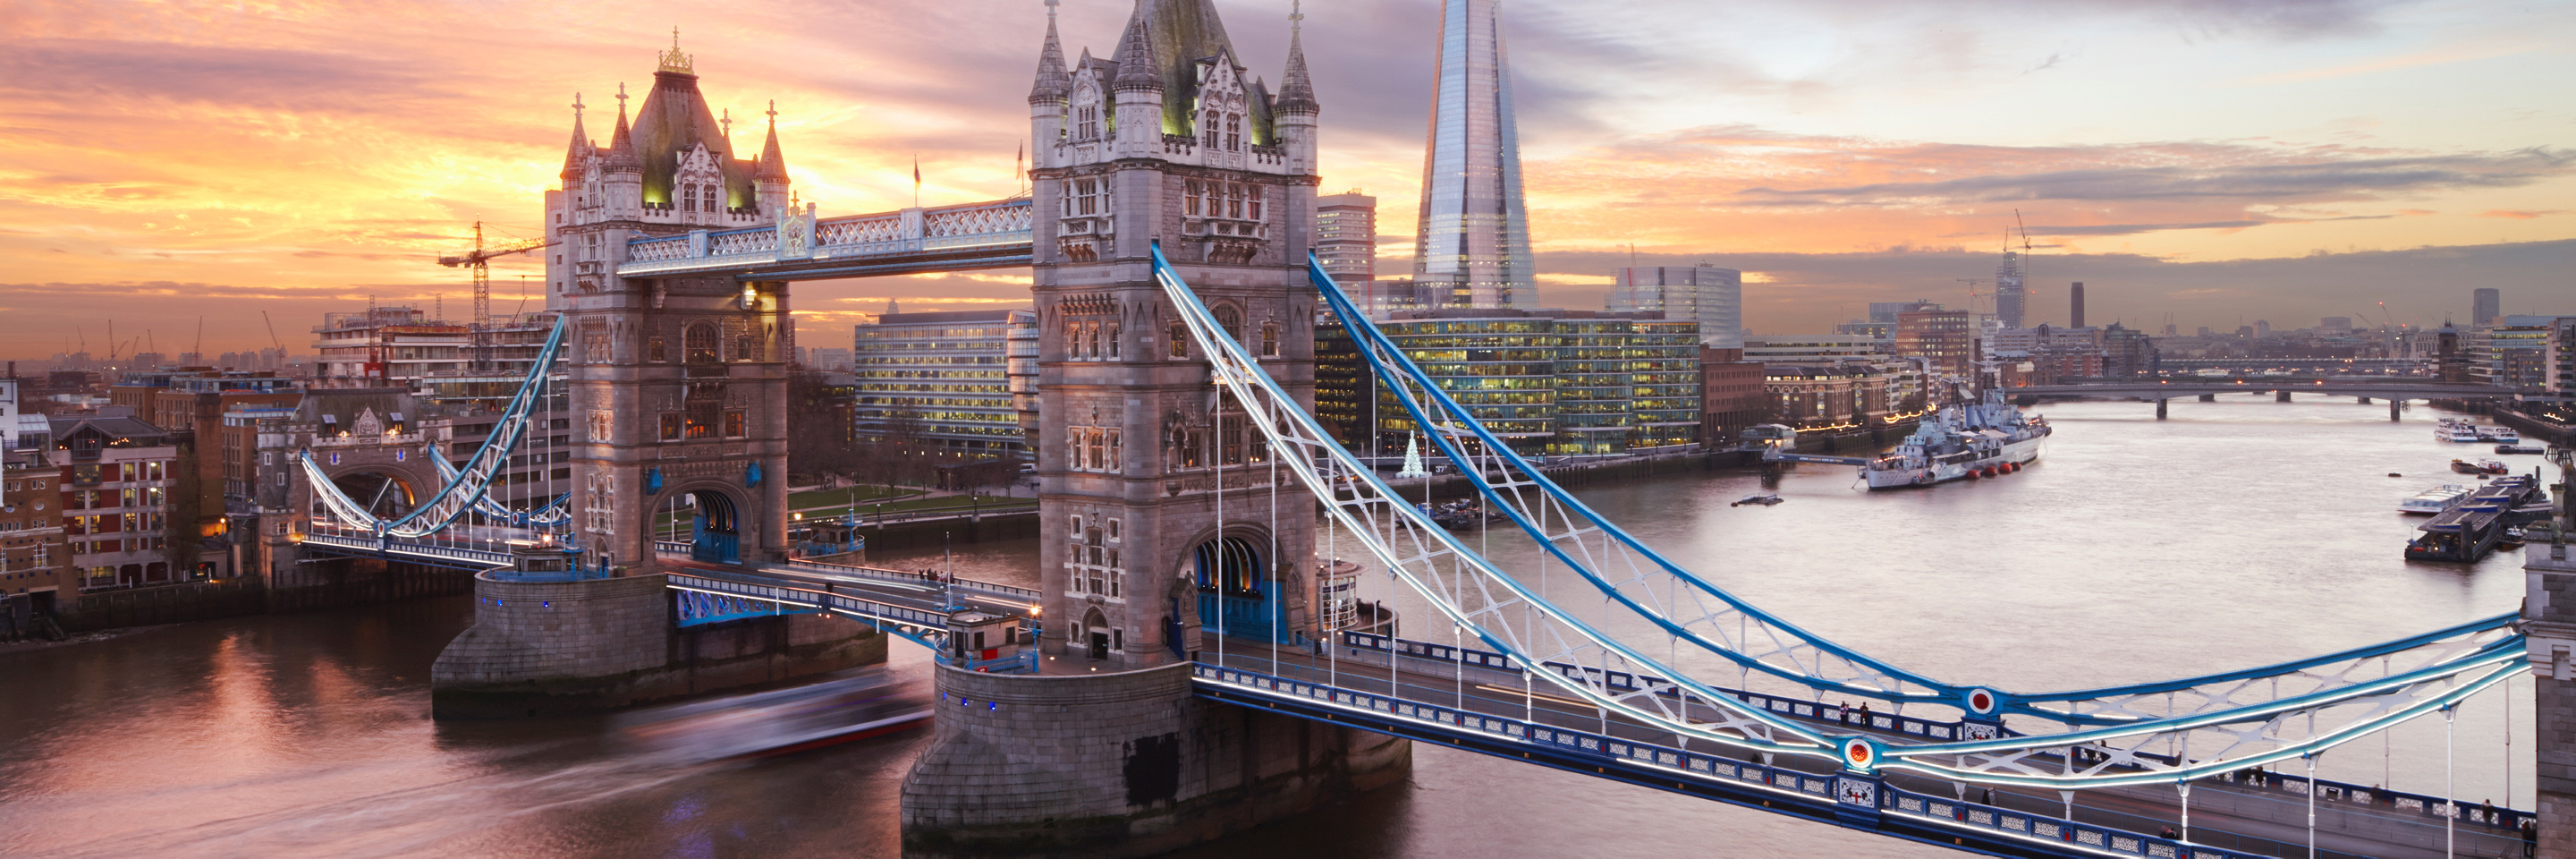 Jewels of Central Europe with 2 nights in Budapest, 2 nights in Paris & 2 nights in London